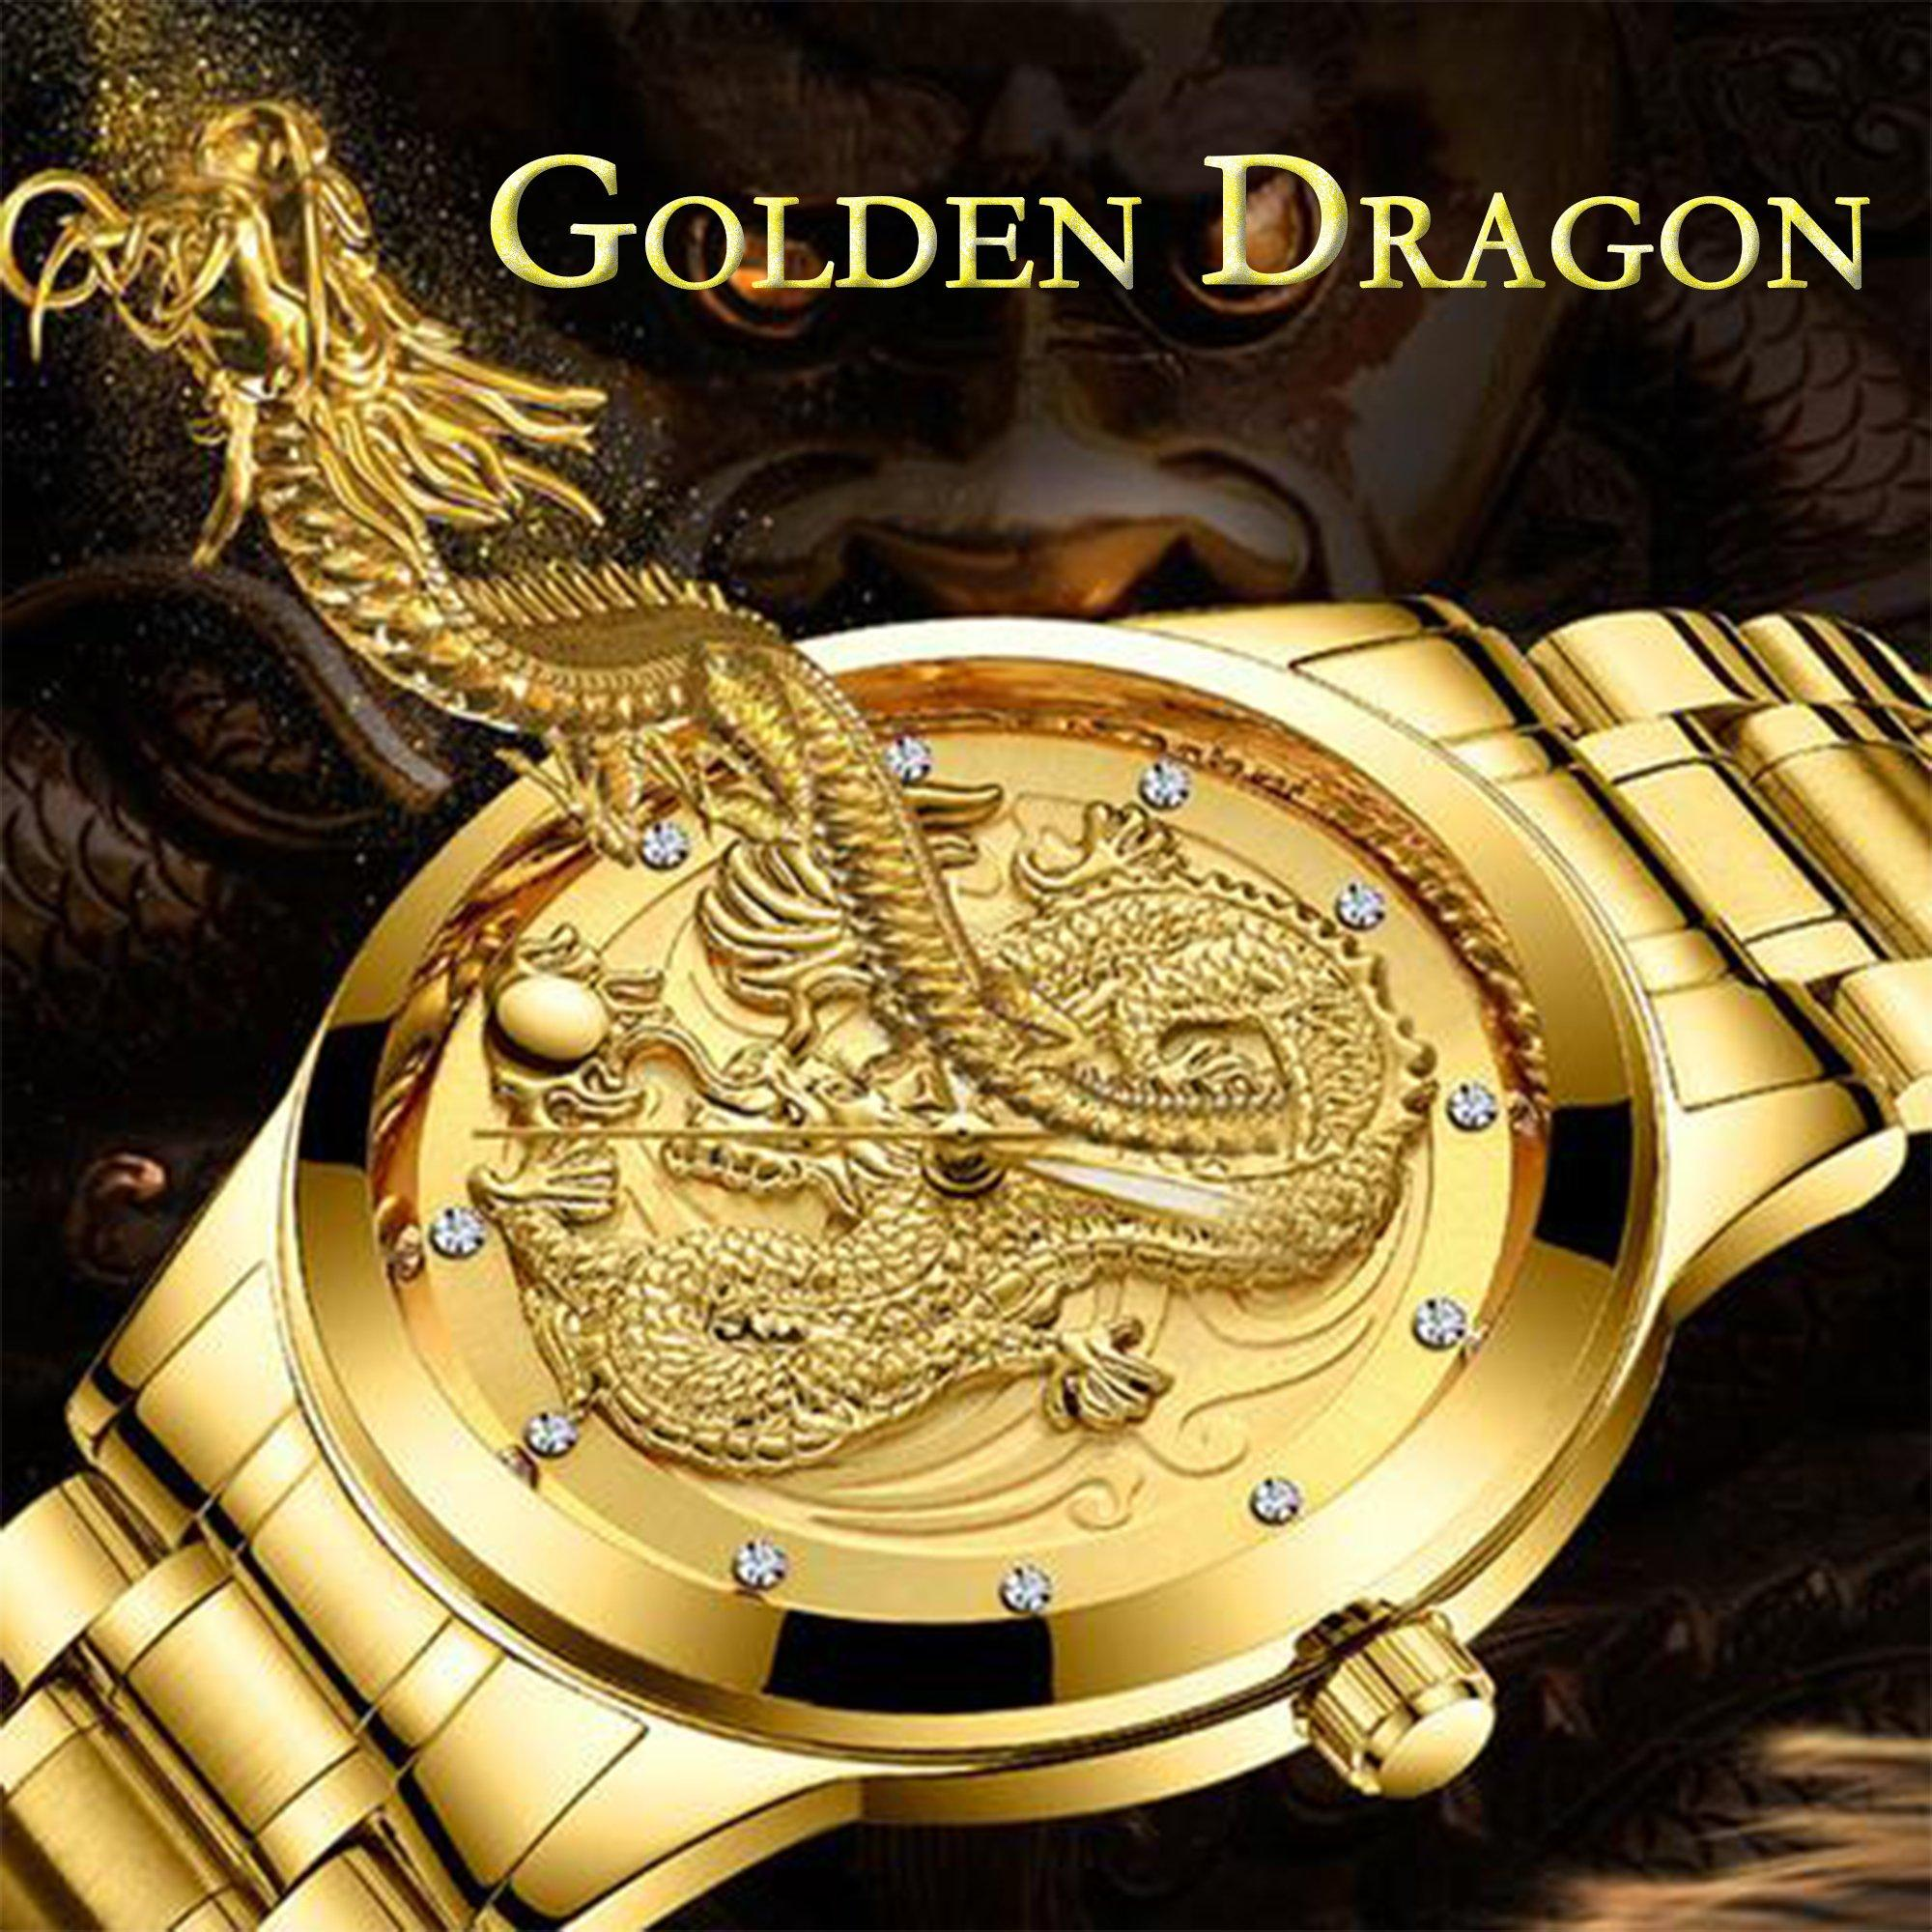 Golden Dragon Carved Automatic Mechanical Watch